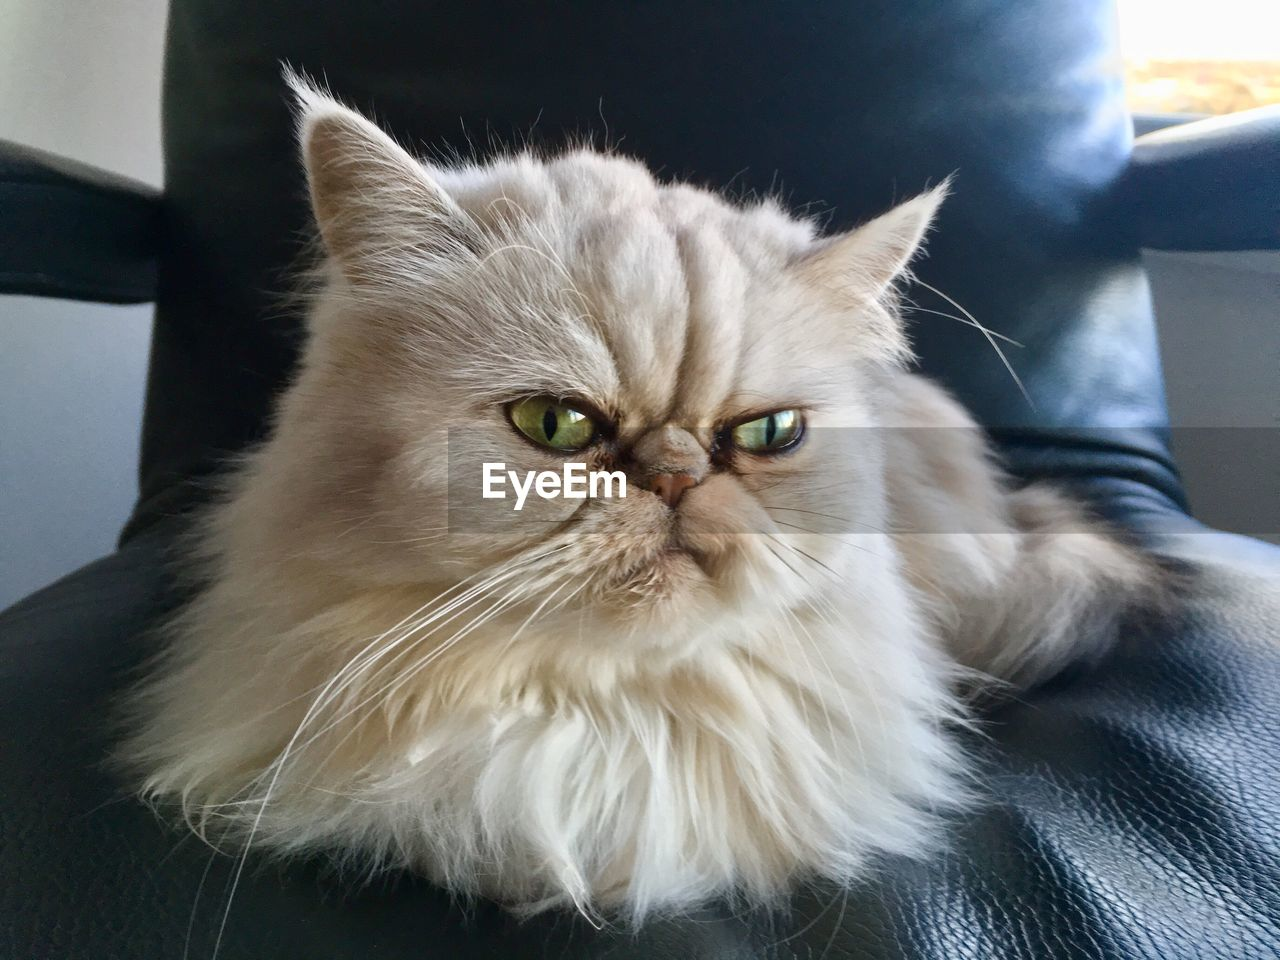 pets, domestic, domestic cat, cat, domestic animals, feline, mammal, animal themes, animal, vertebrate, one animal, indoors, persian cat, whisker, portrait, looking at camera, no people, home interior, close-up, furniture